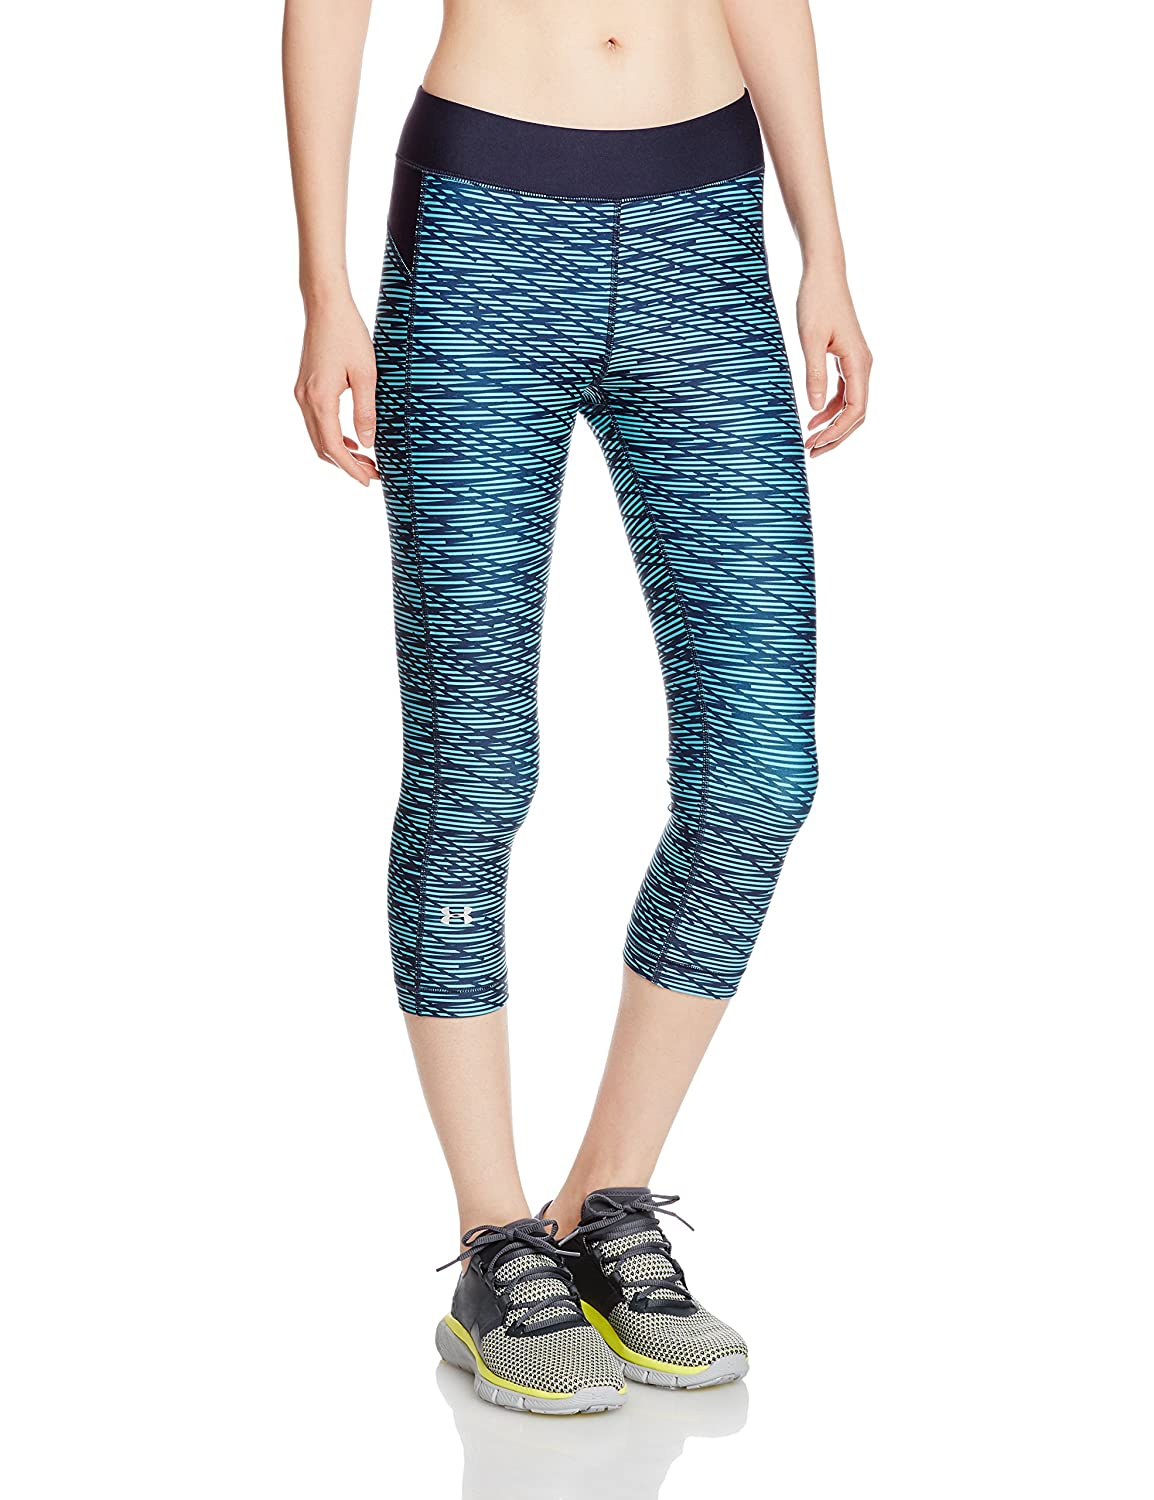 Under Armour Women's HeatGear Armour Printed Capri Under Armour Apparel 1297906